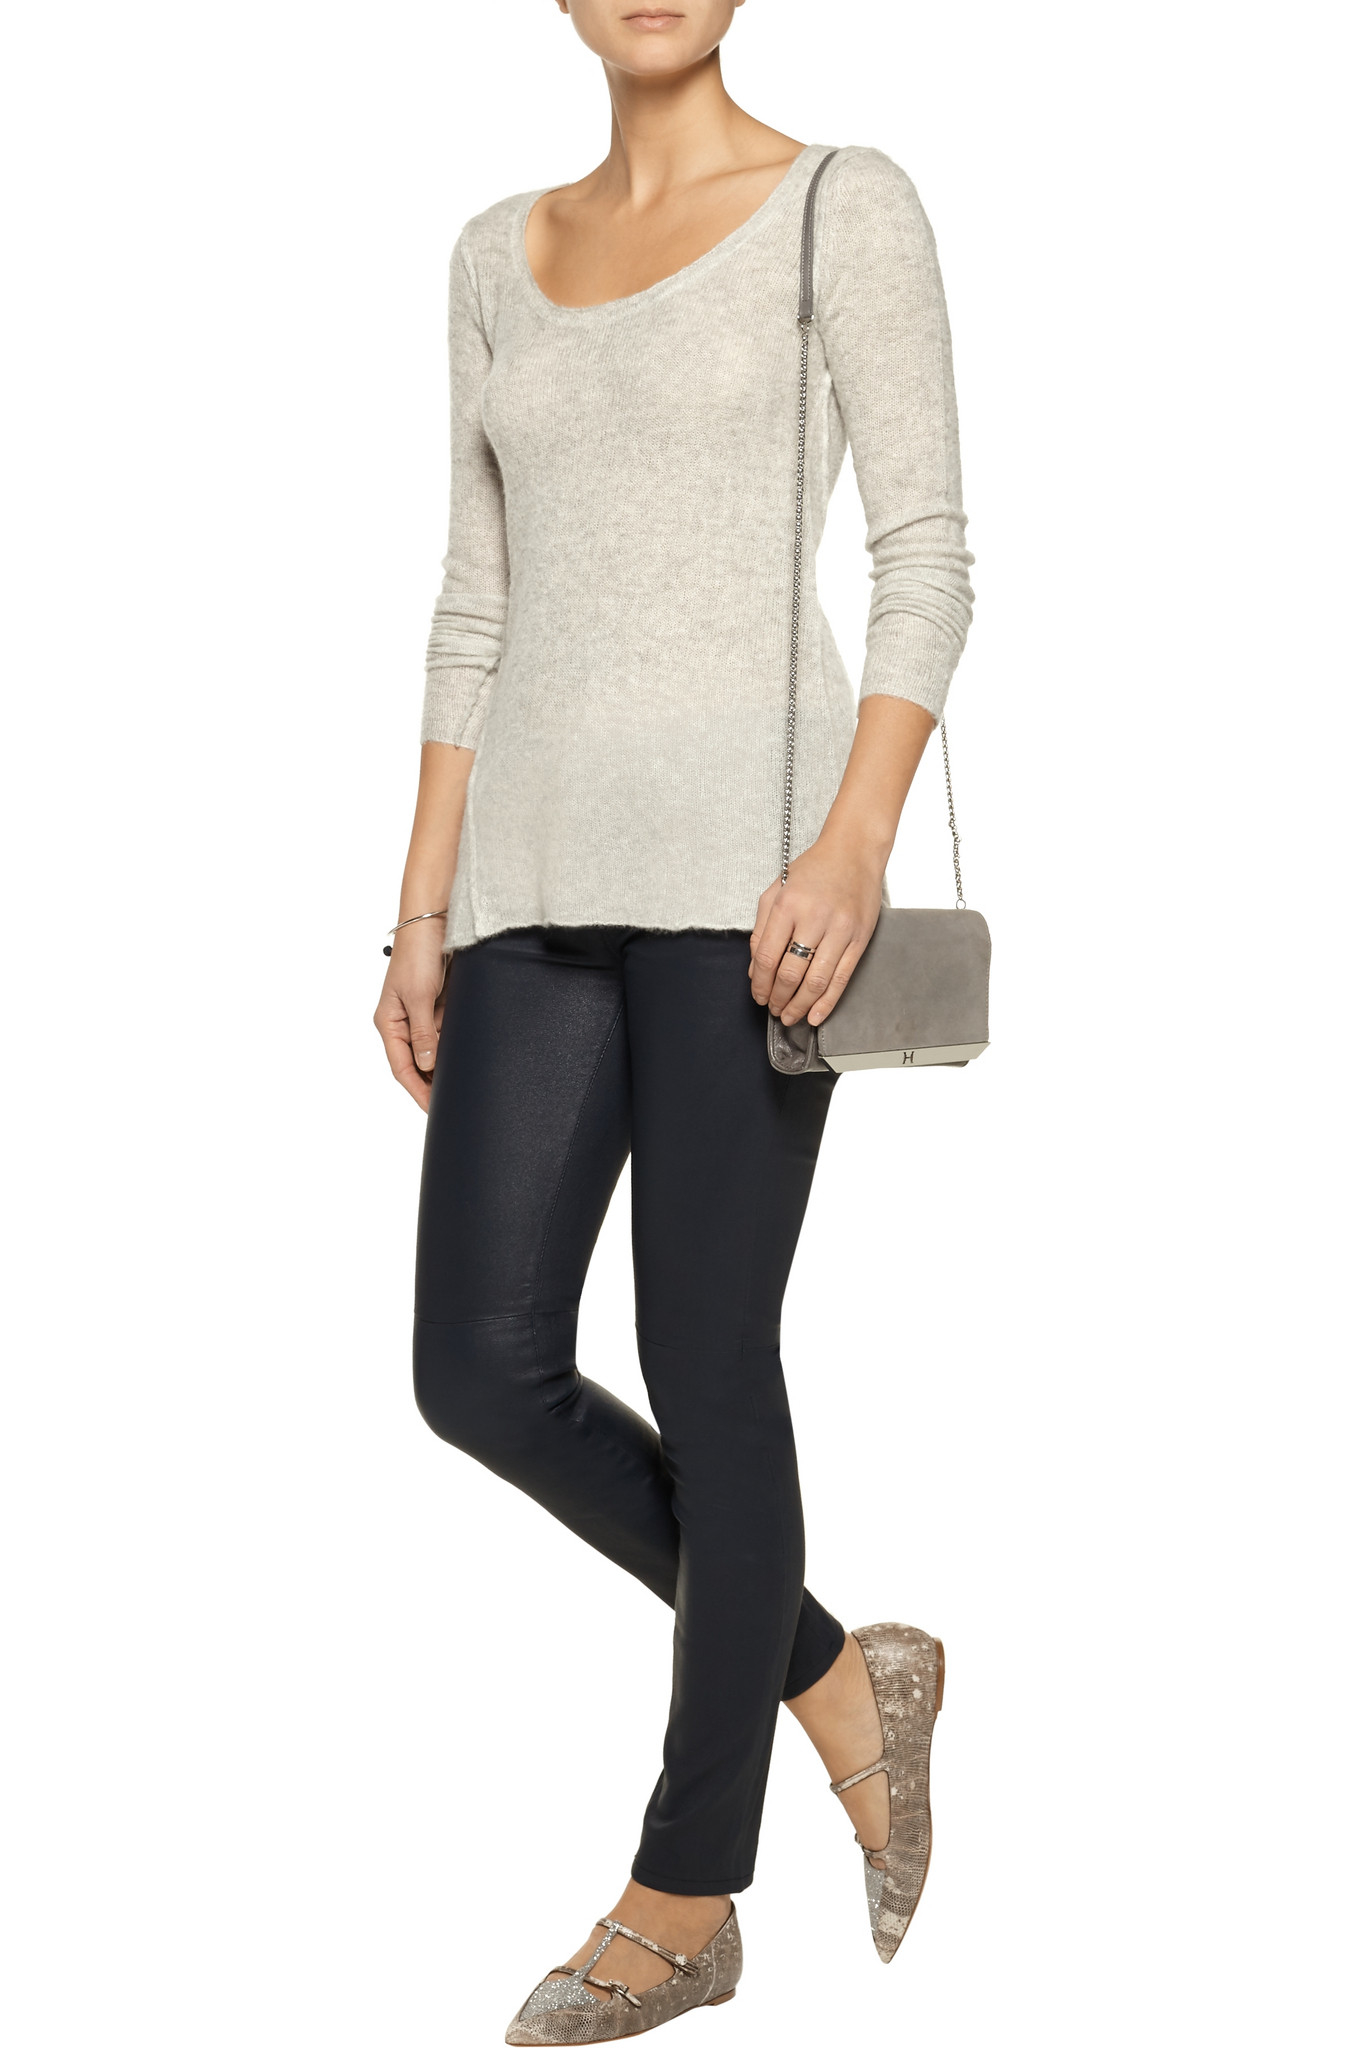 Free Shipping with $50 it24-ieop.gq for women's cashmere sweaters at it24-ieop.gq All of our women's wool sweaters are expertly designed to last.